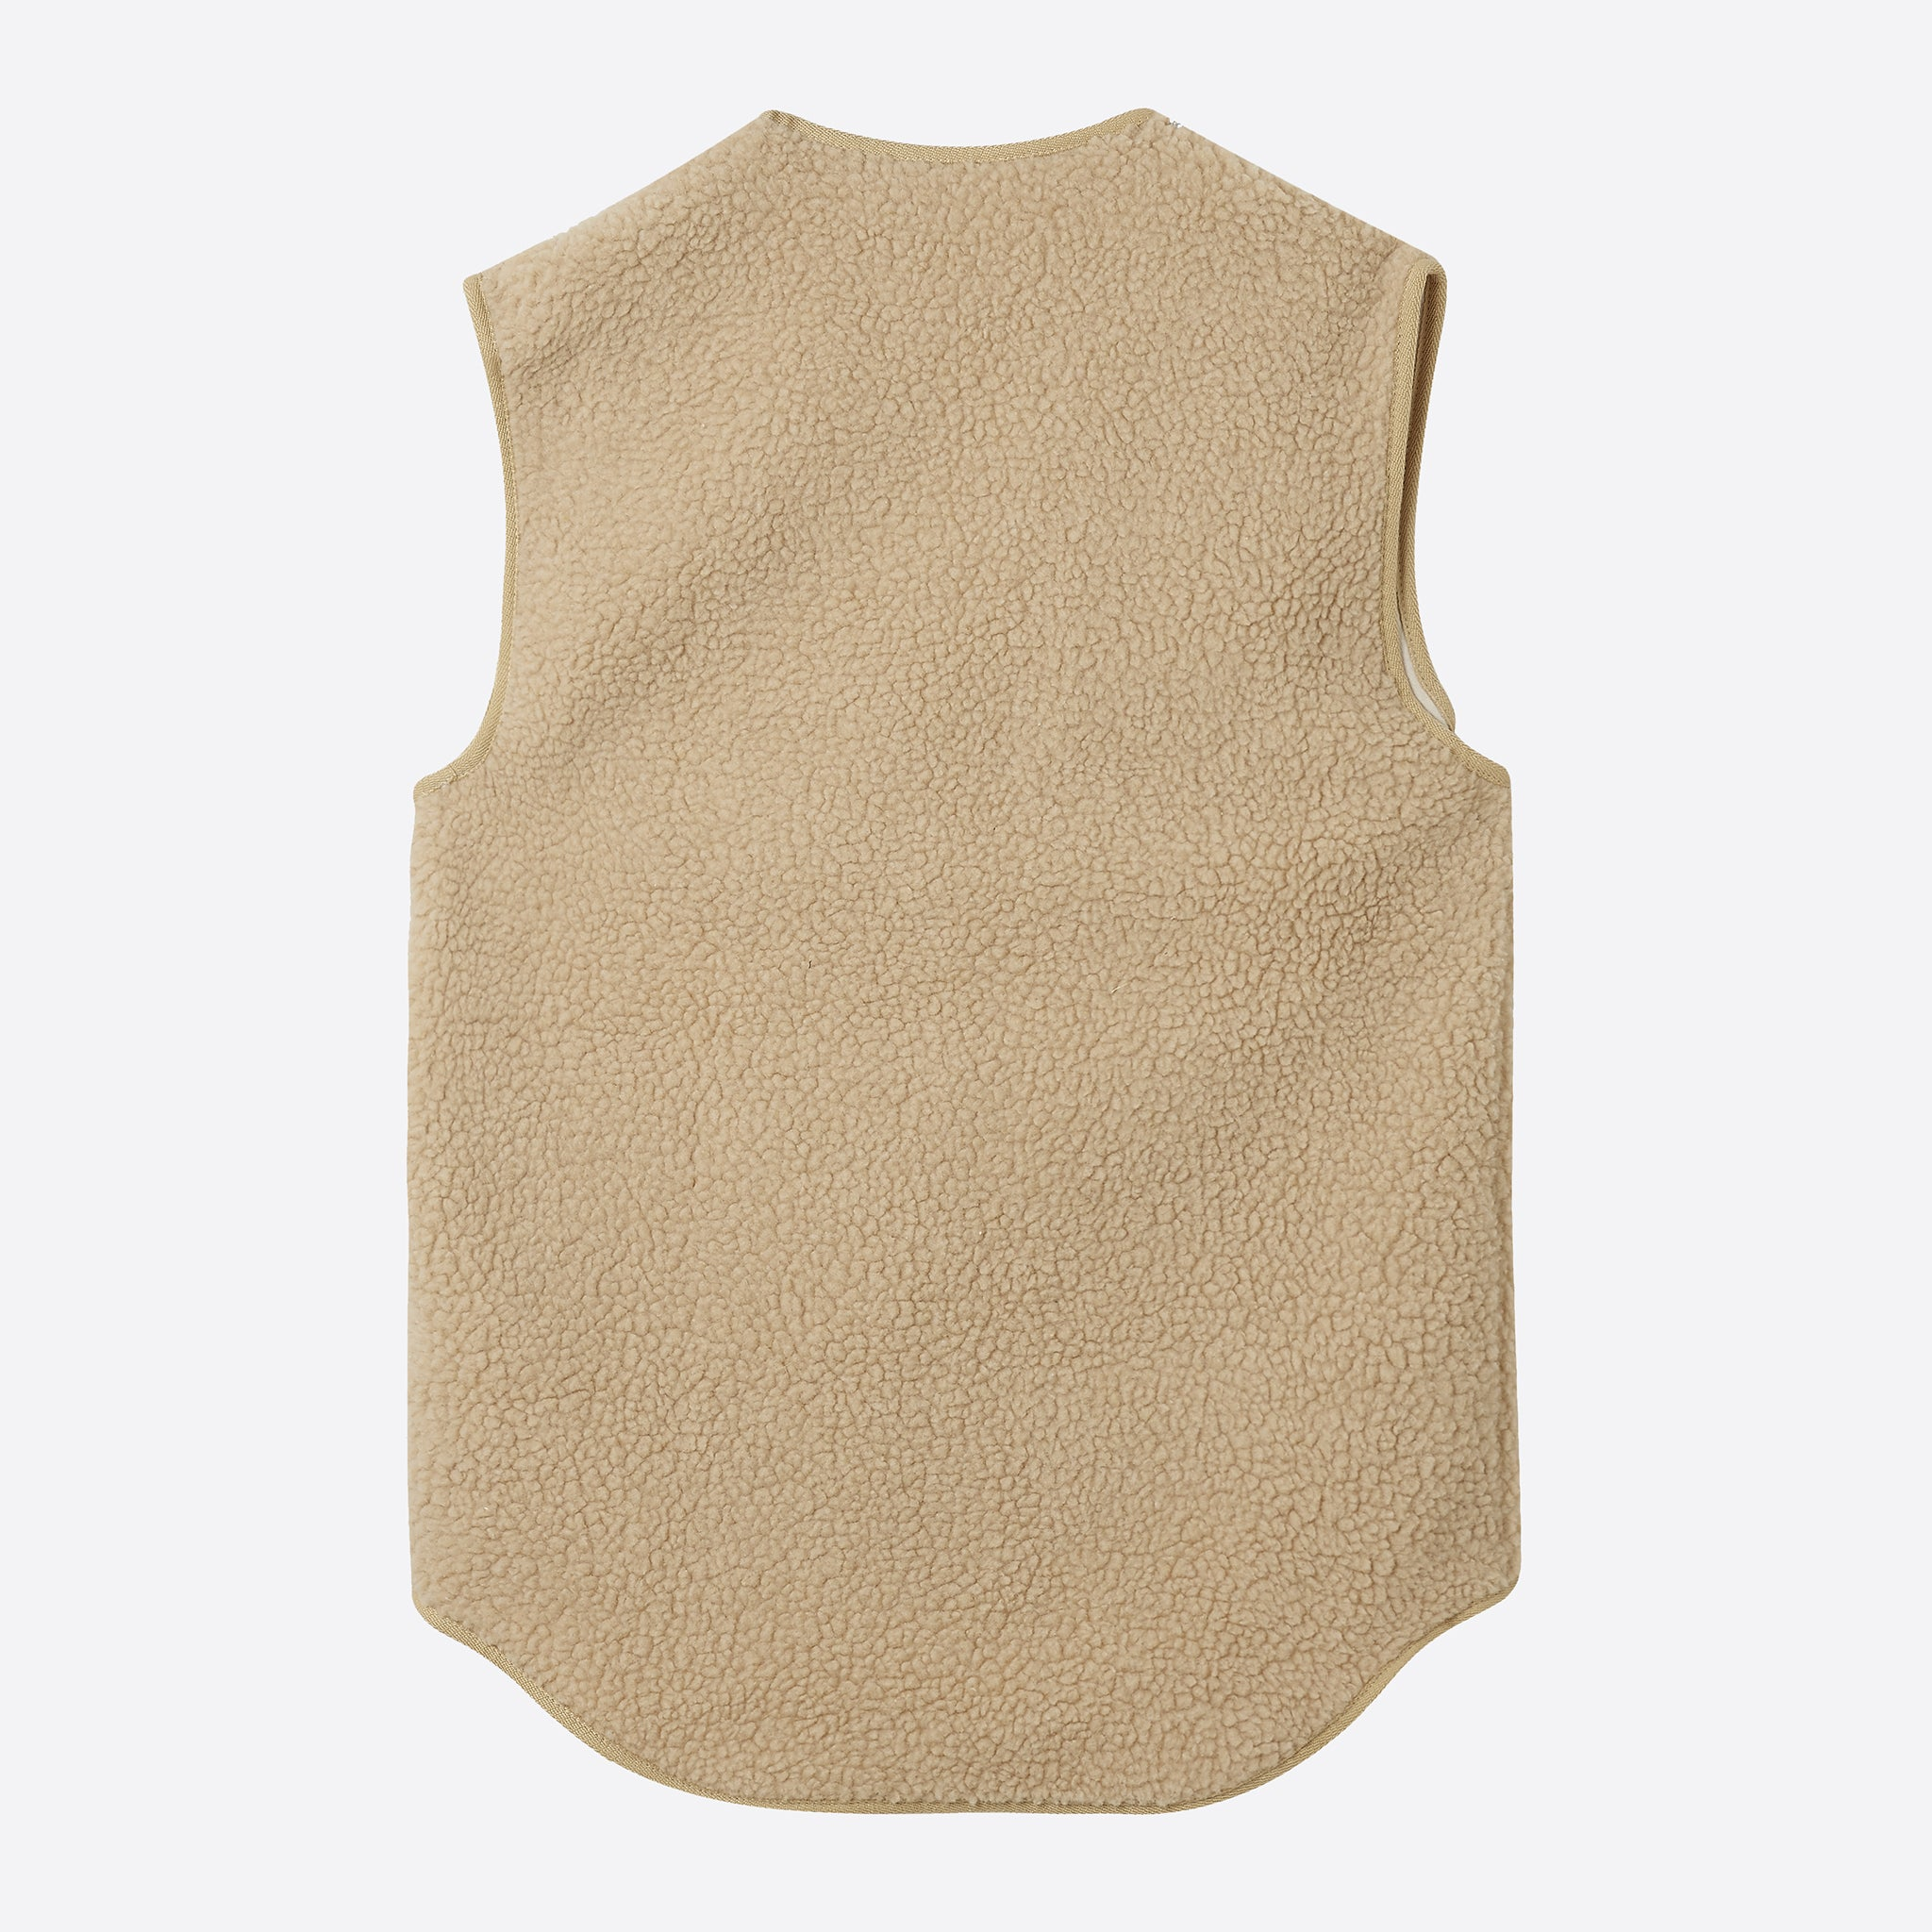 La Paz Penouço Down Vest in Off White